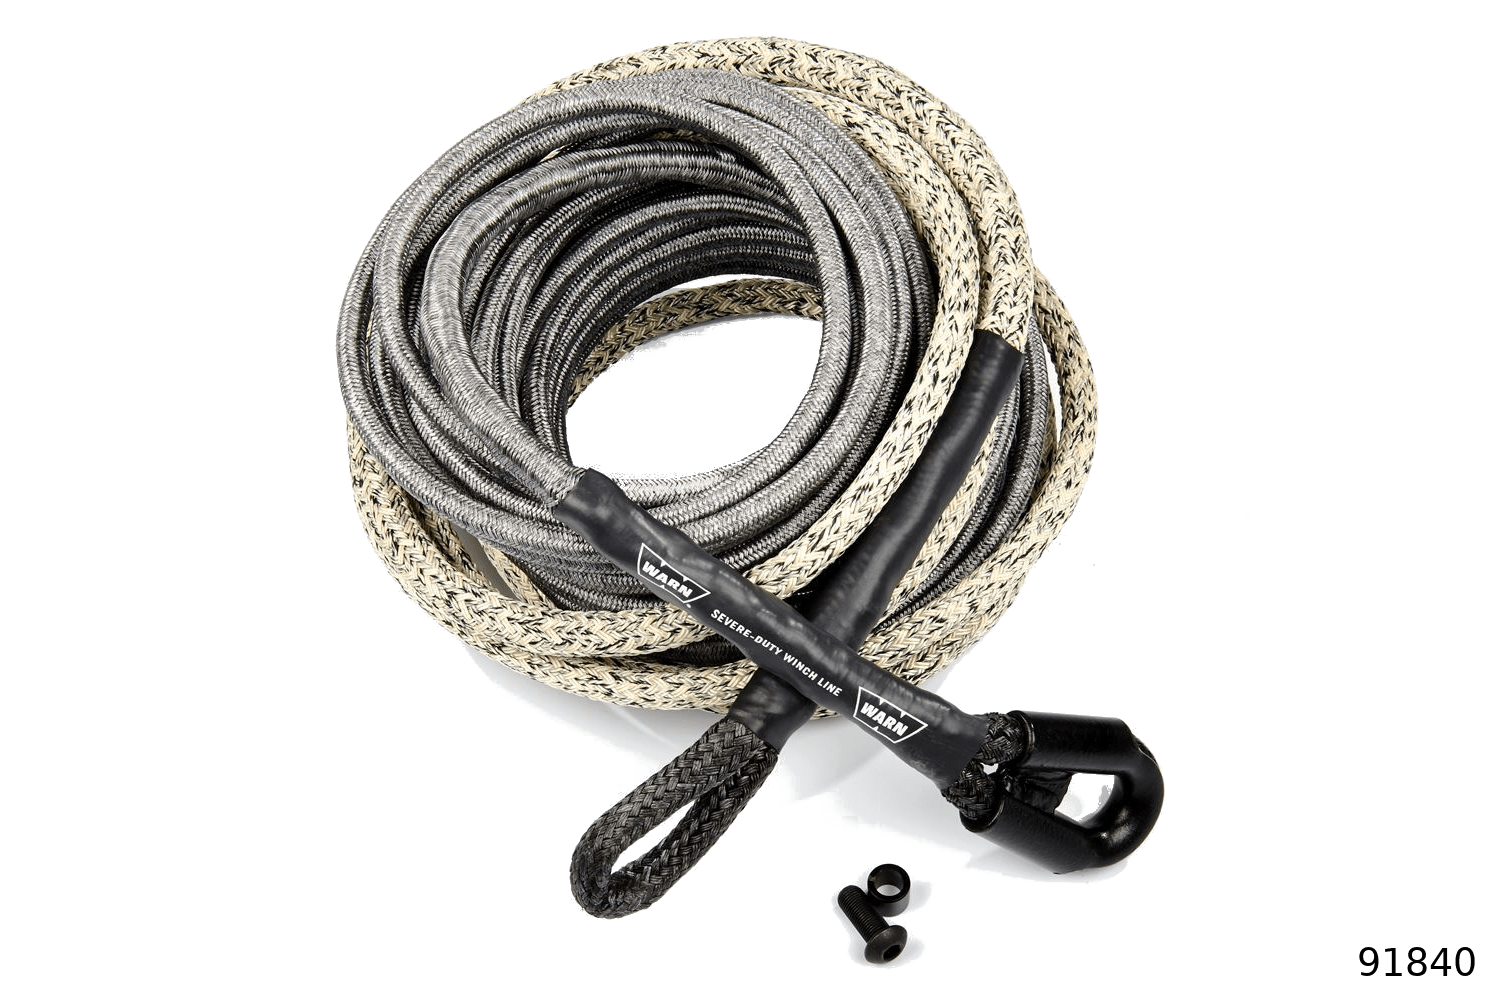 warn industrial rigging accessories spydura promax synthetic rope series 91840